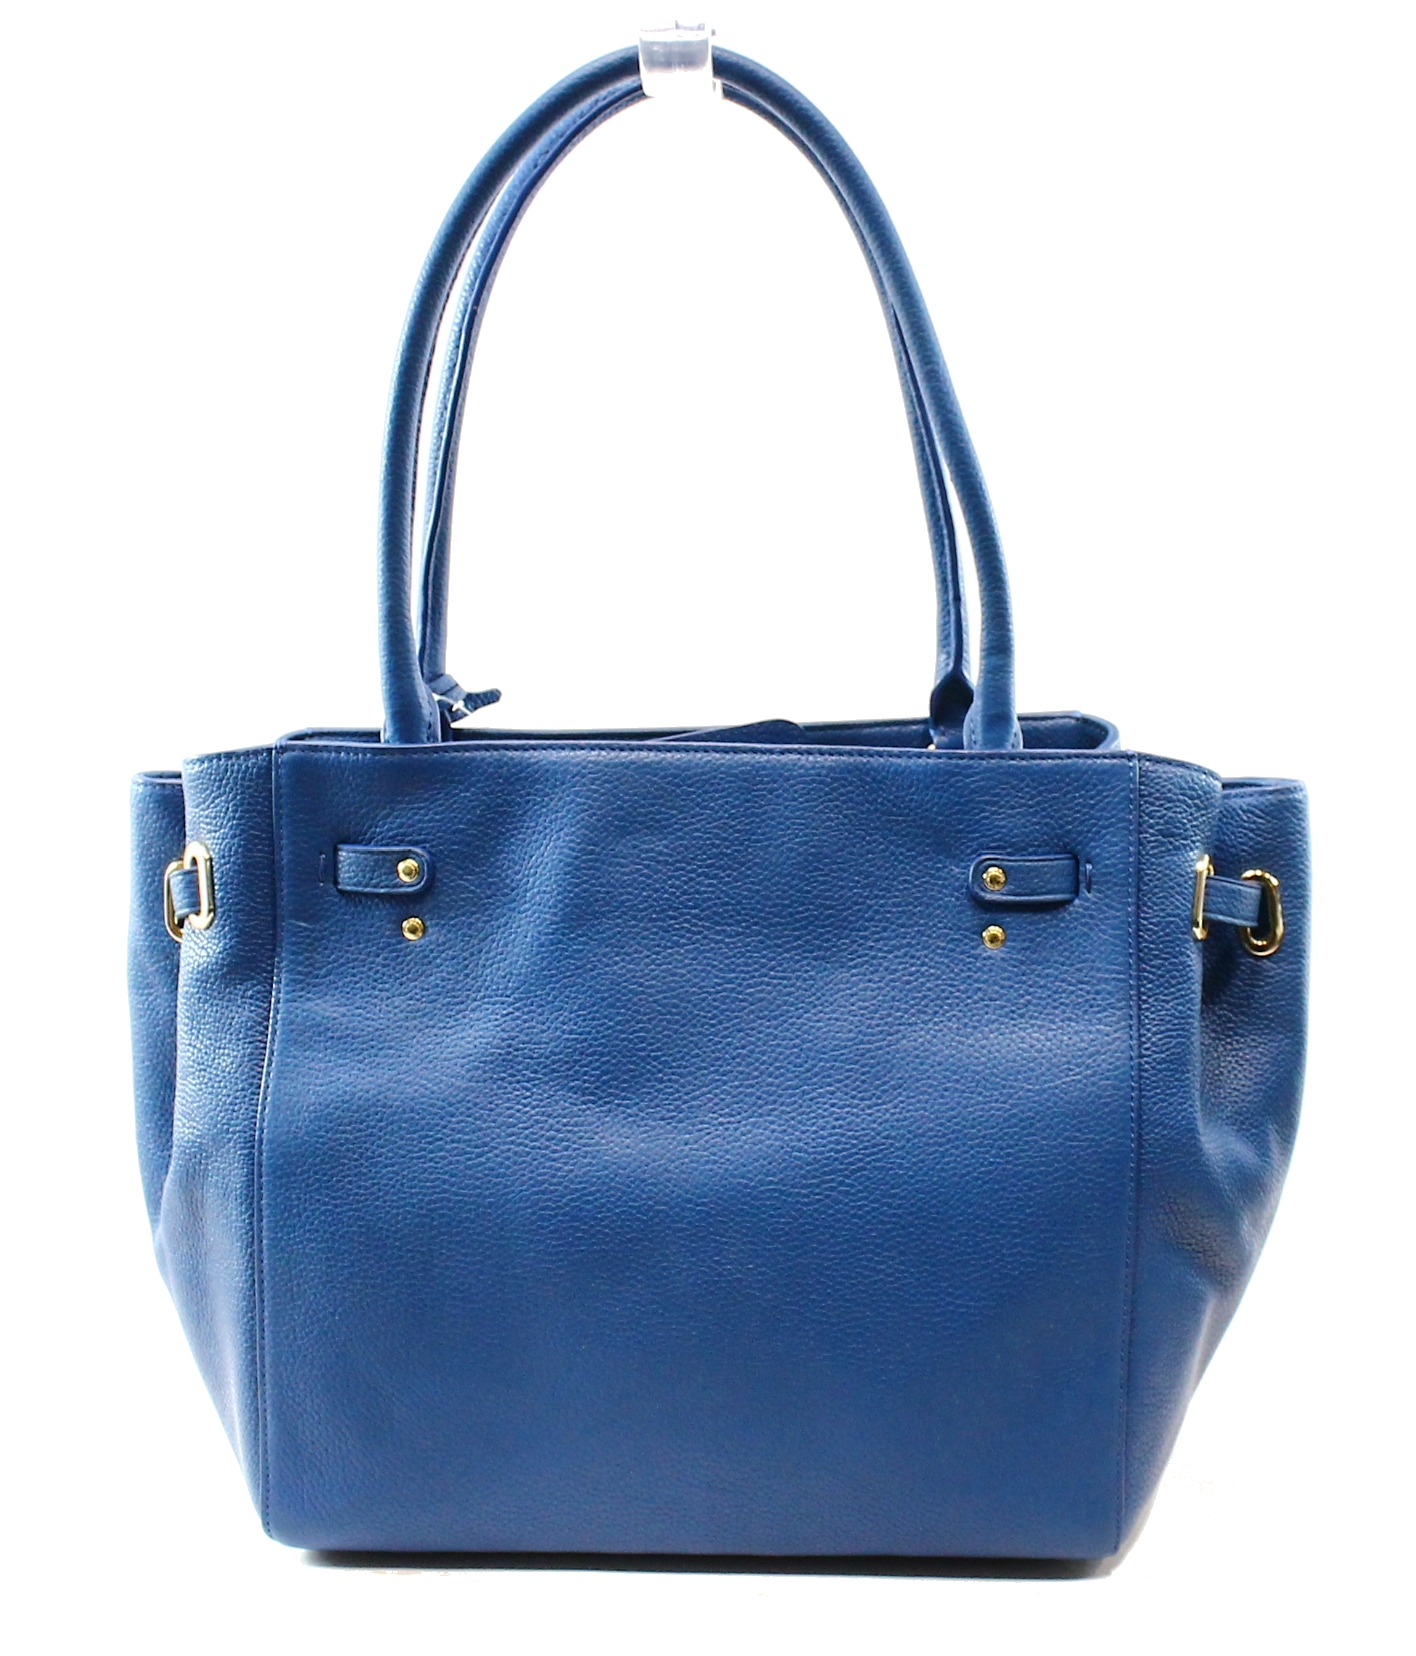 coach poppy handbags outlet  coach new blue denim